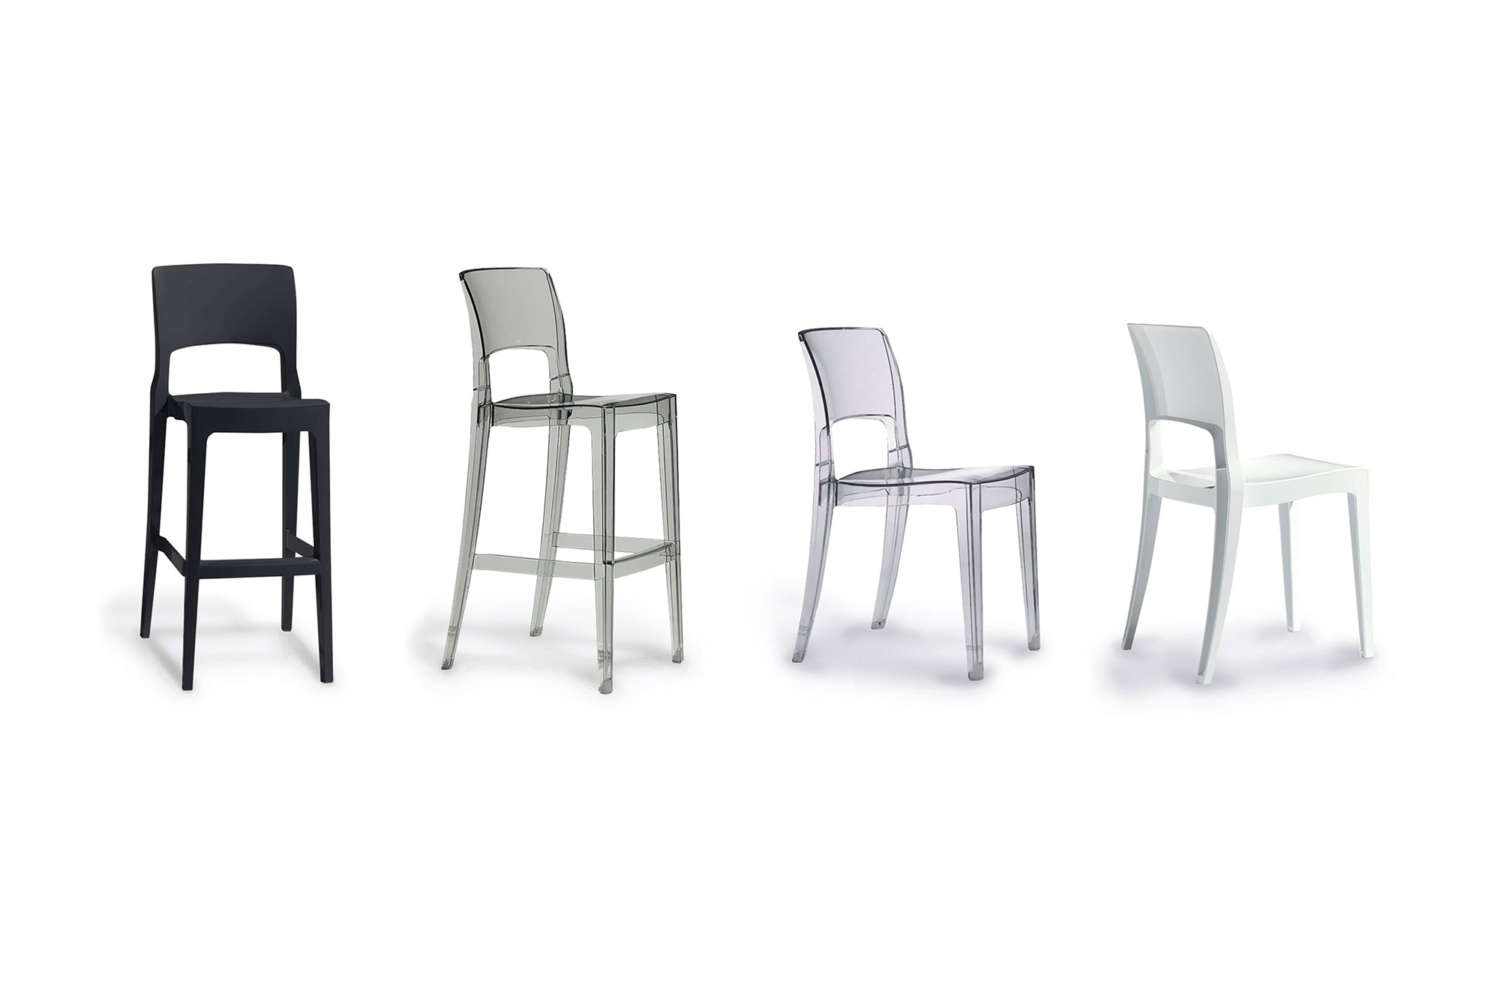 Commercial plastic chairs for offices and cafe's